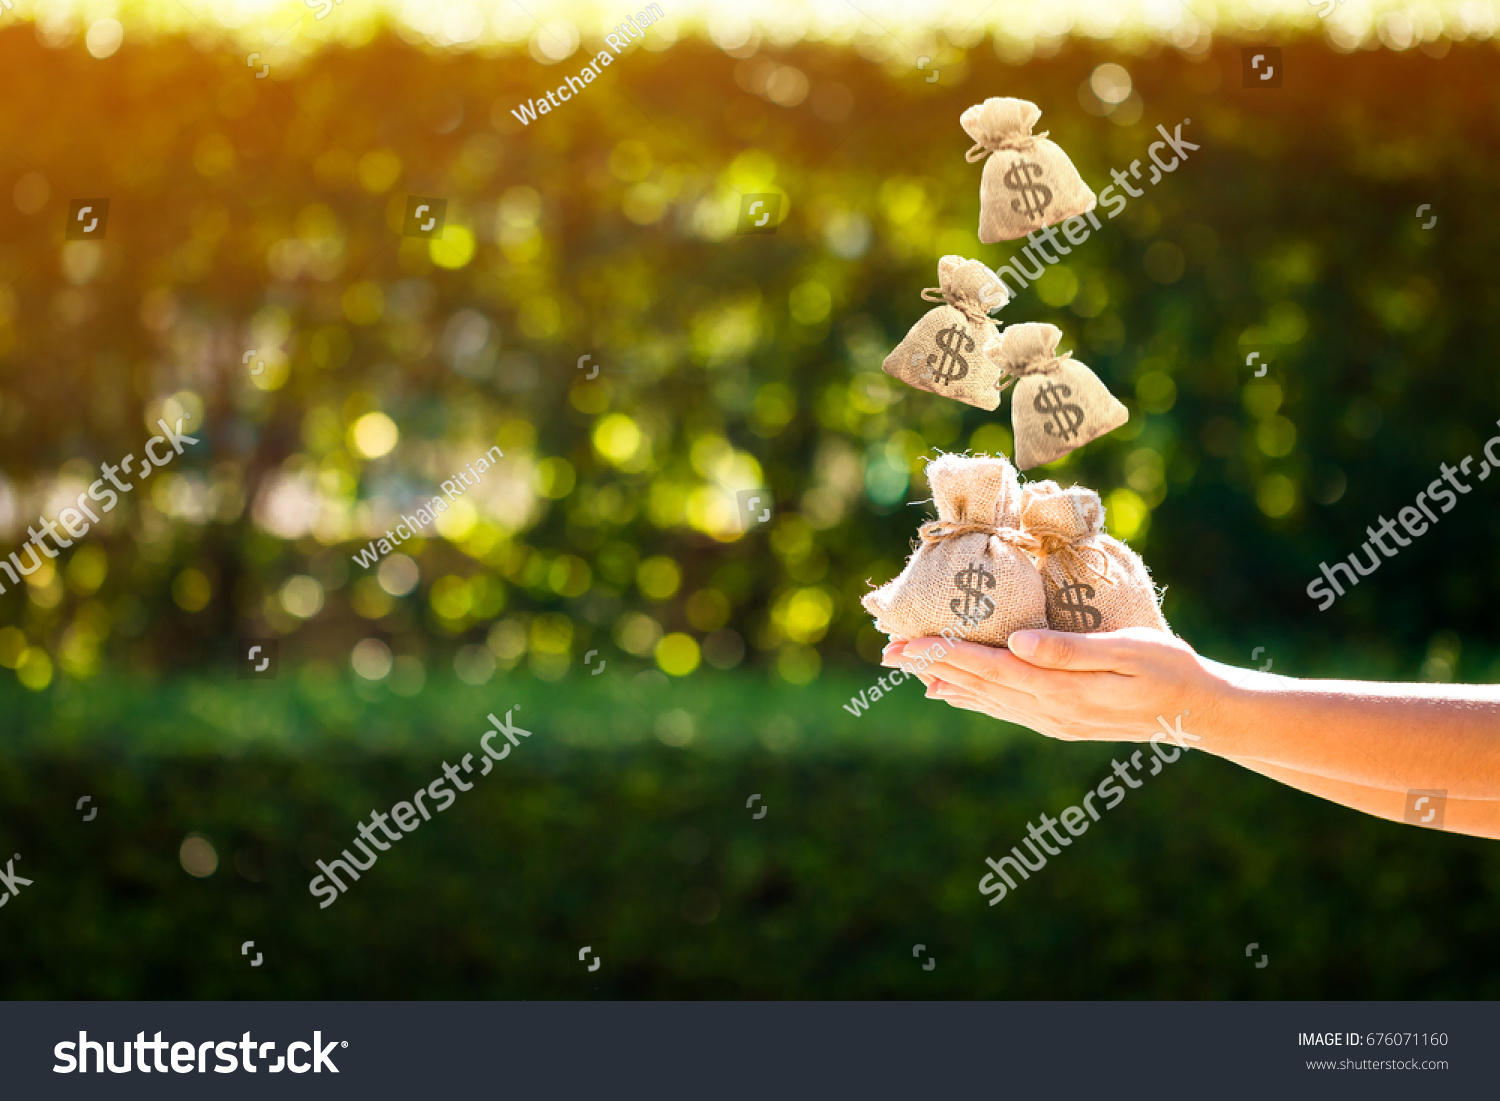 Women hands hold a money bags and dropping on the top in the public park for loans to planned investment in the future concept. #676071160